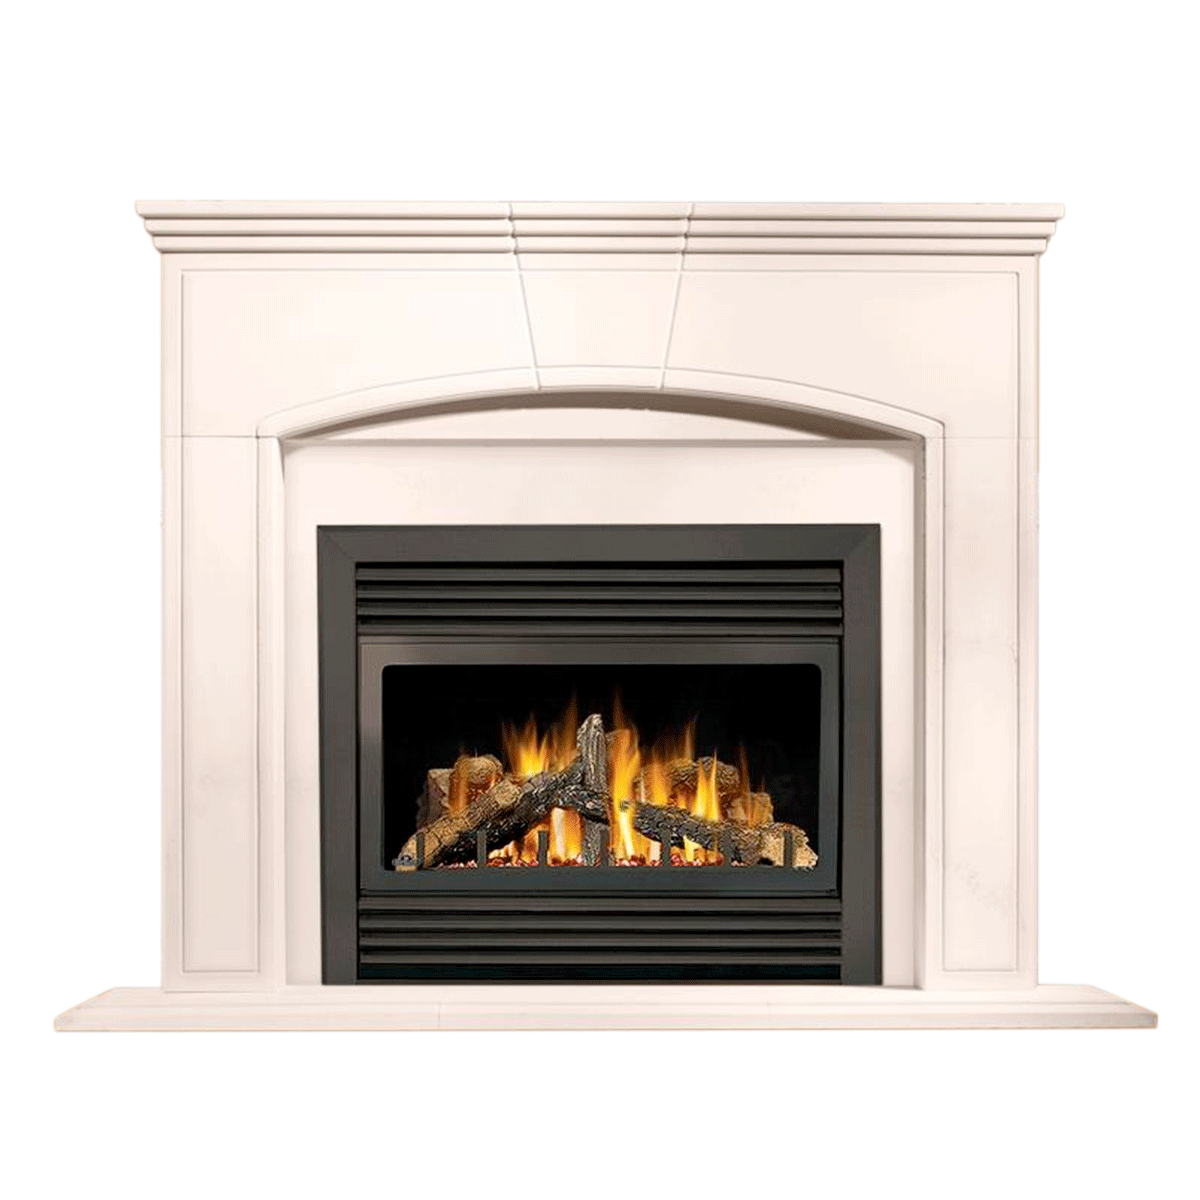 ibuyfireplaces com buy fireplace equipment fireplace